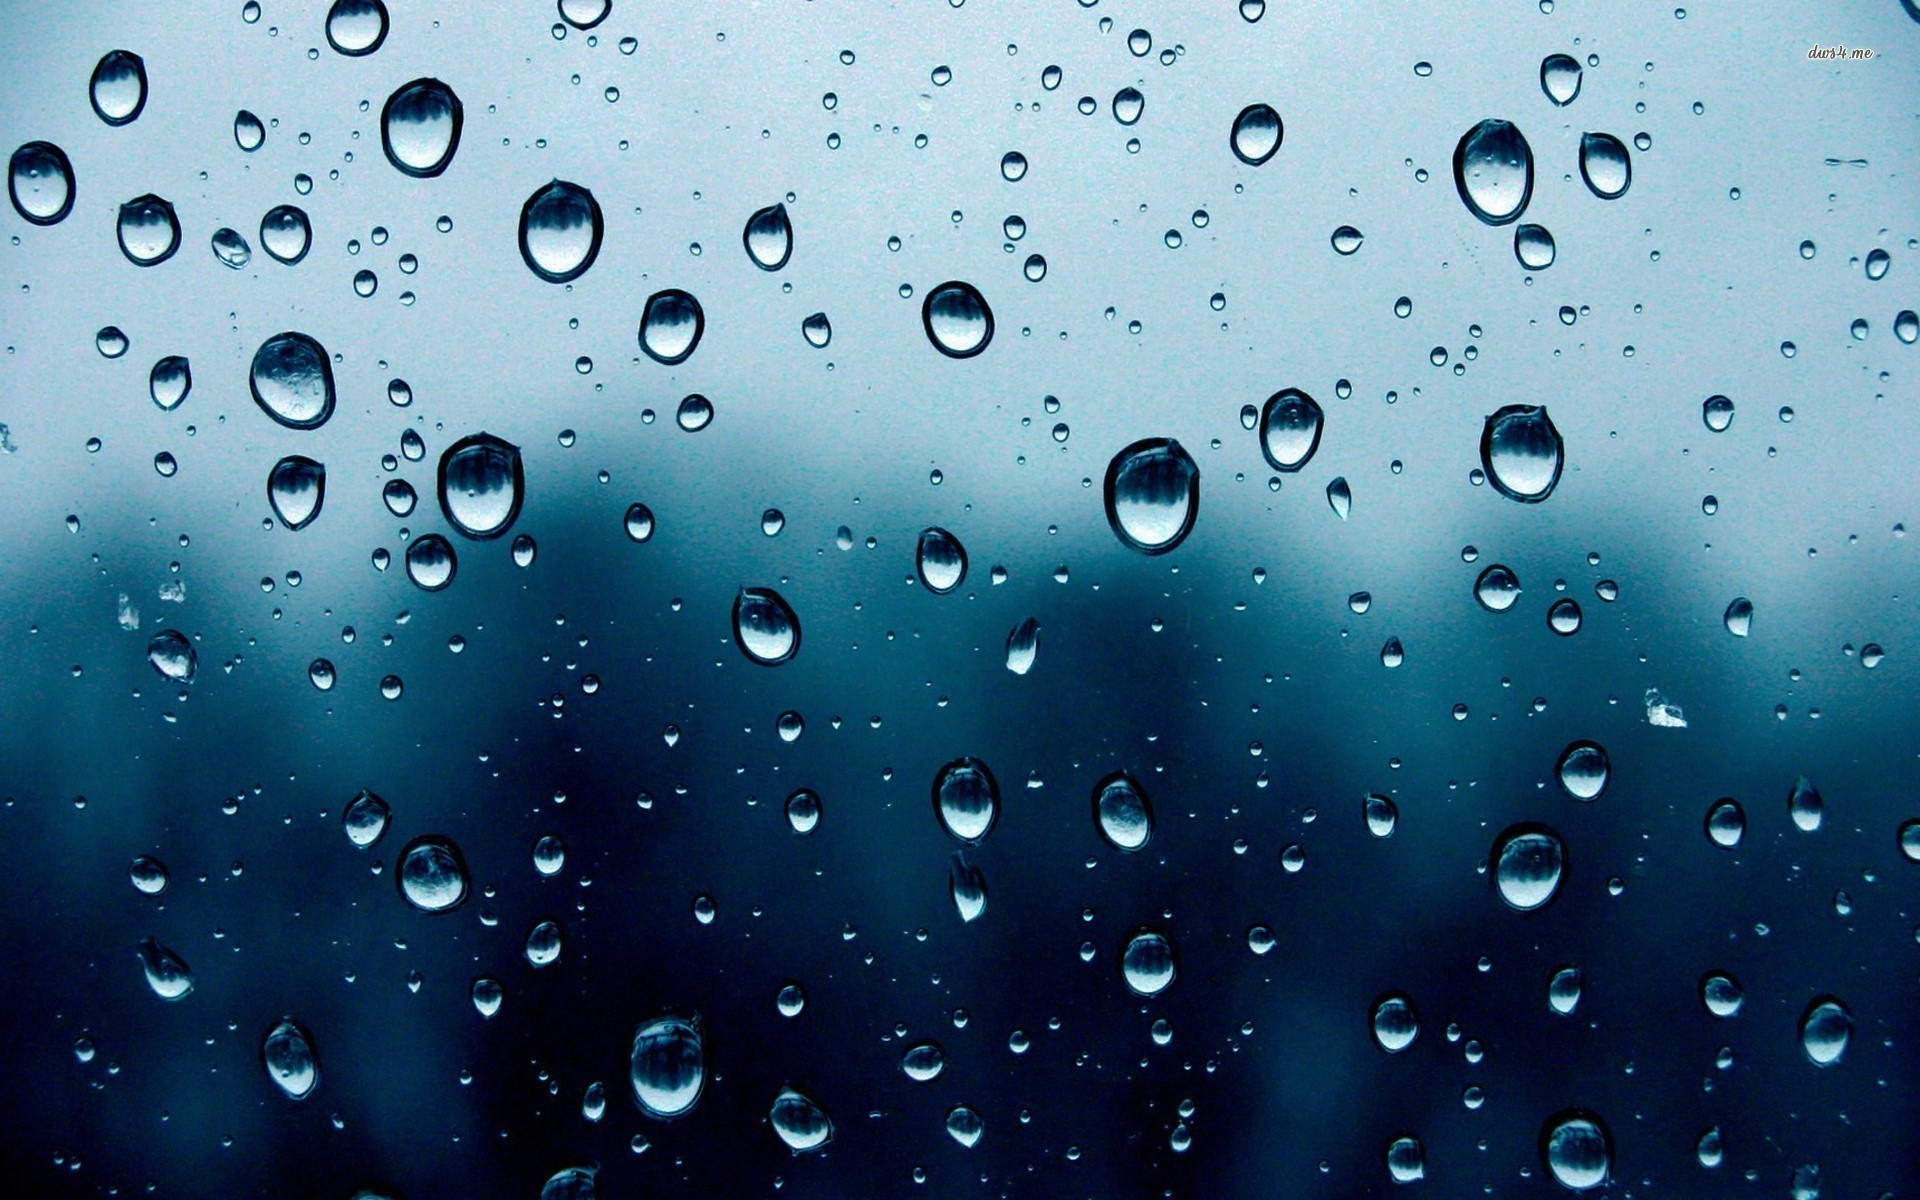 Amazing Raindrops Pictures & Backgrounds